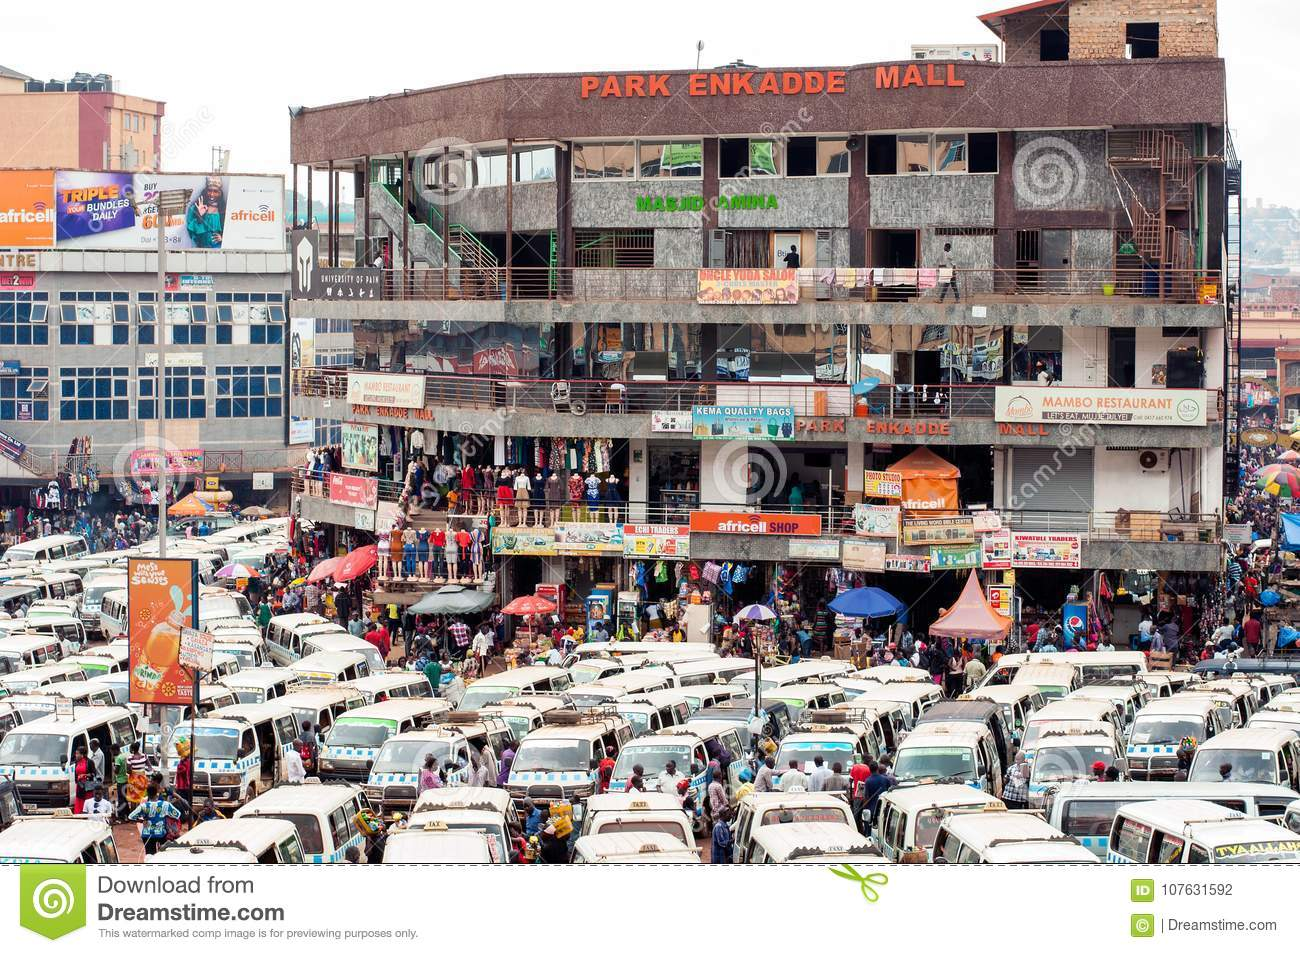 Image result for OLD TAXI PARK MALL KAMPALA